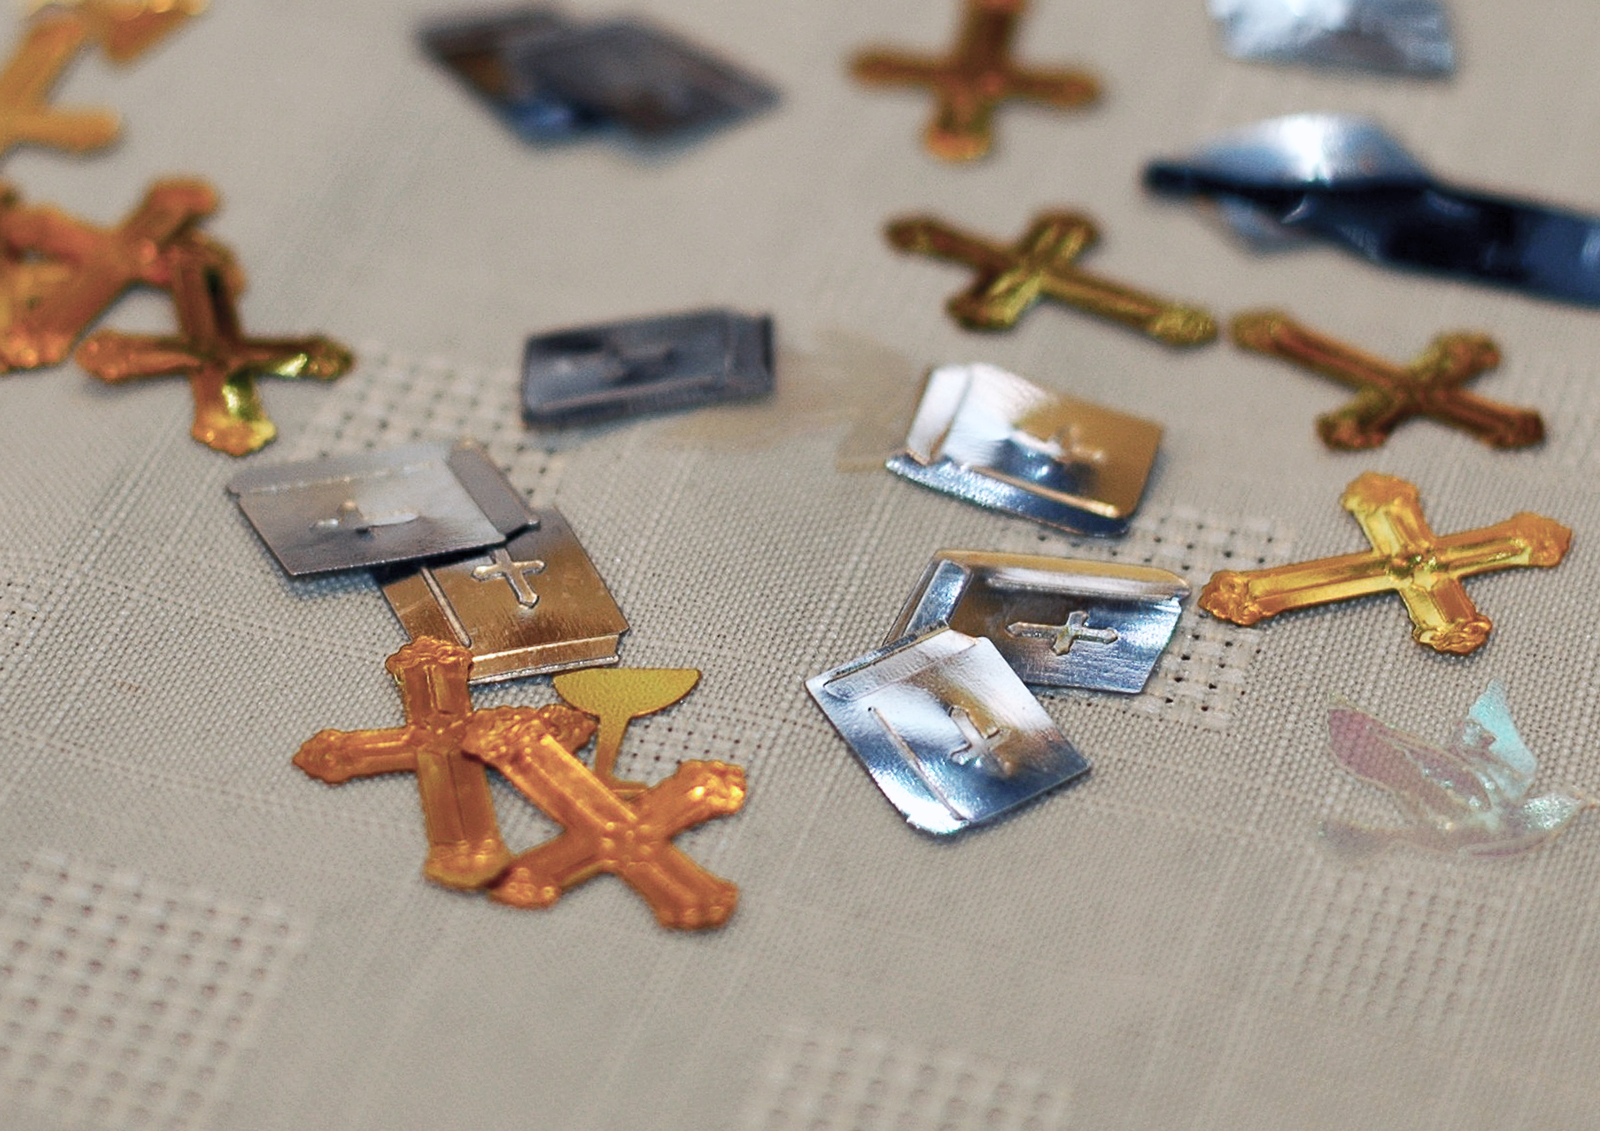 Crosses & Bibles